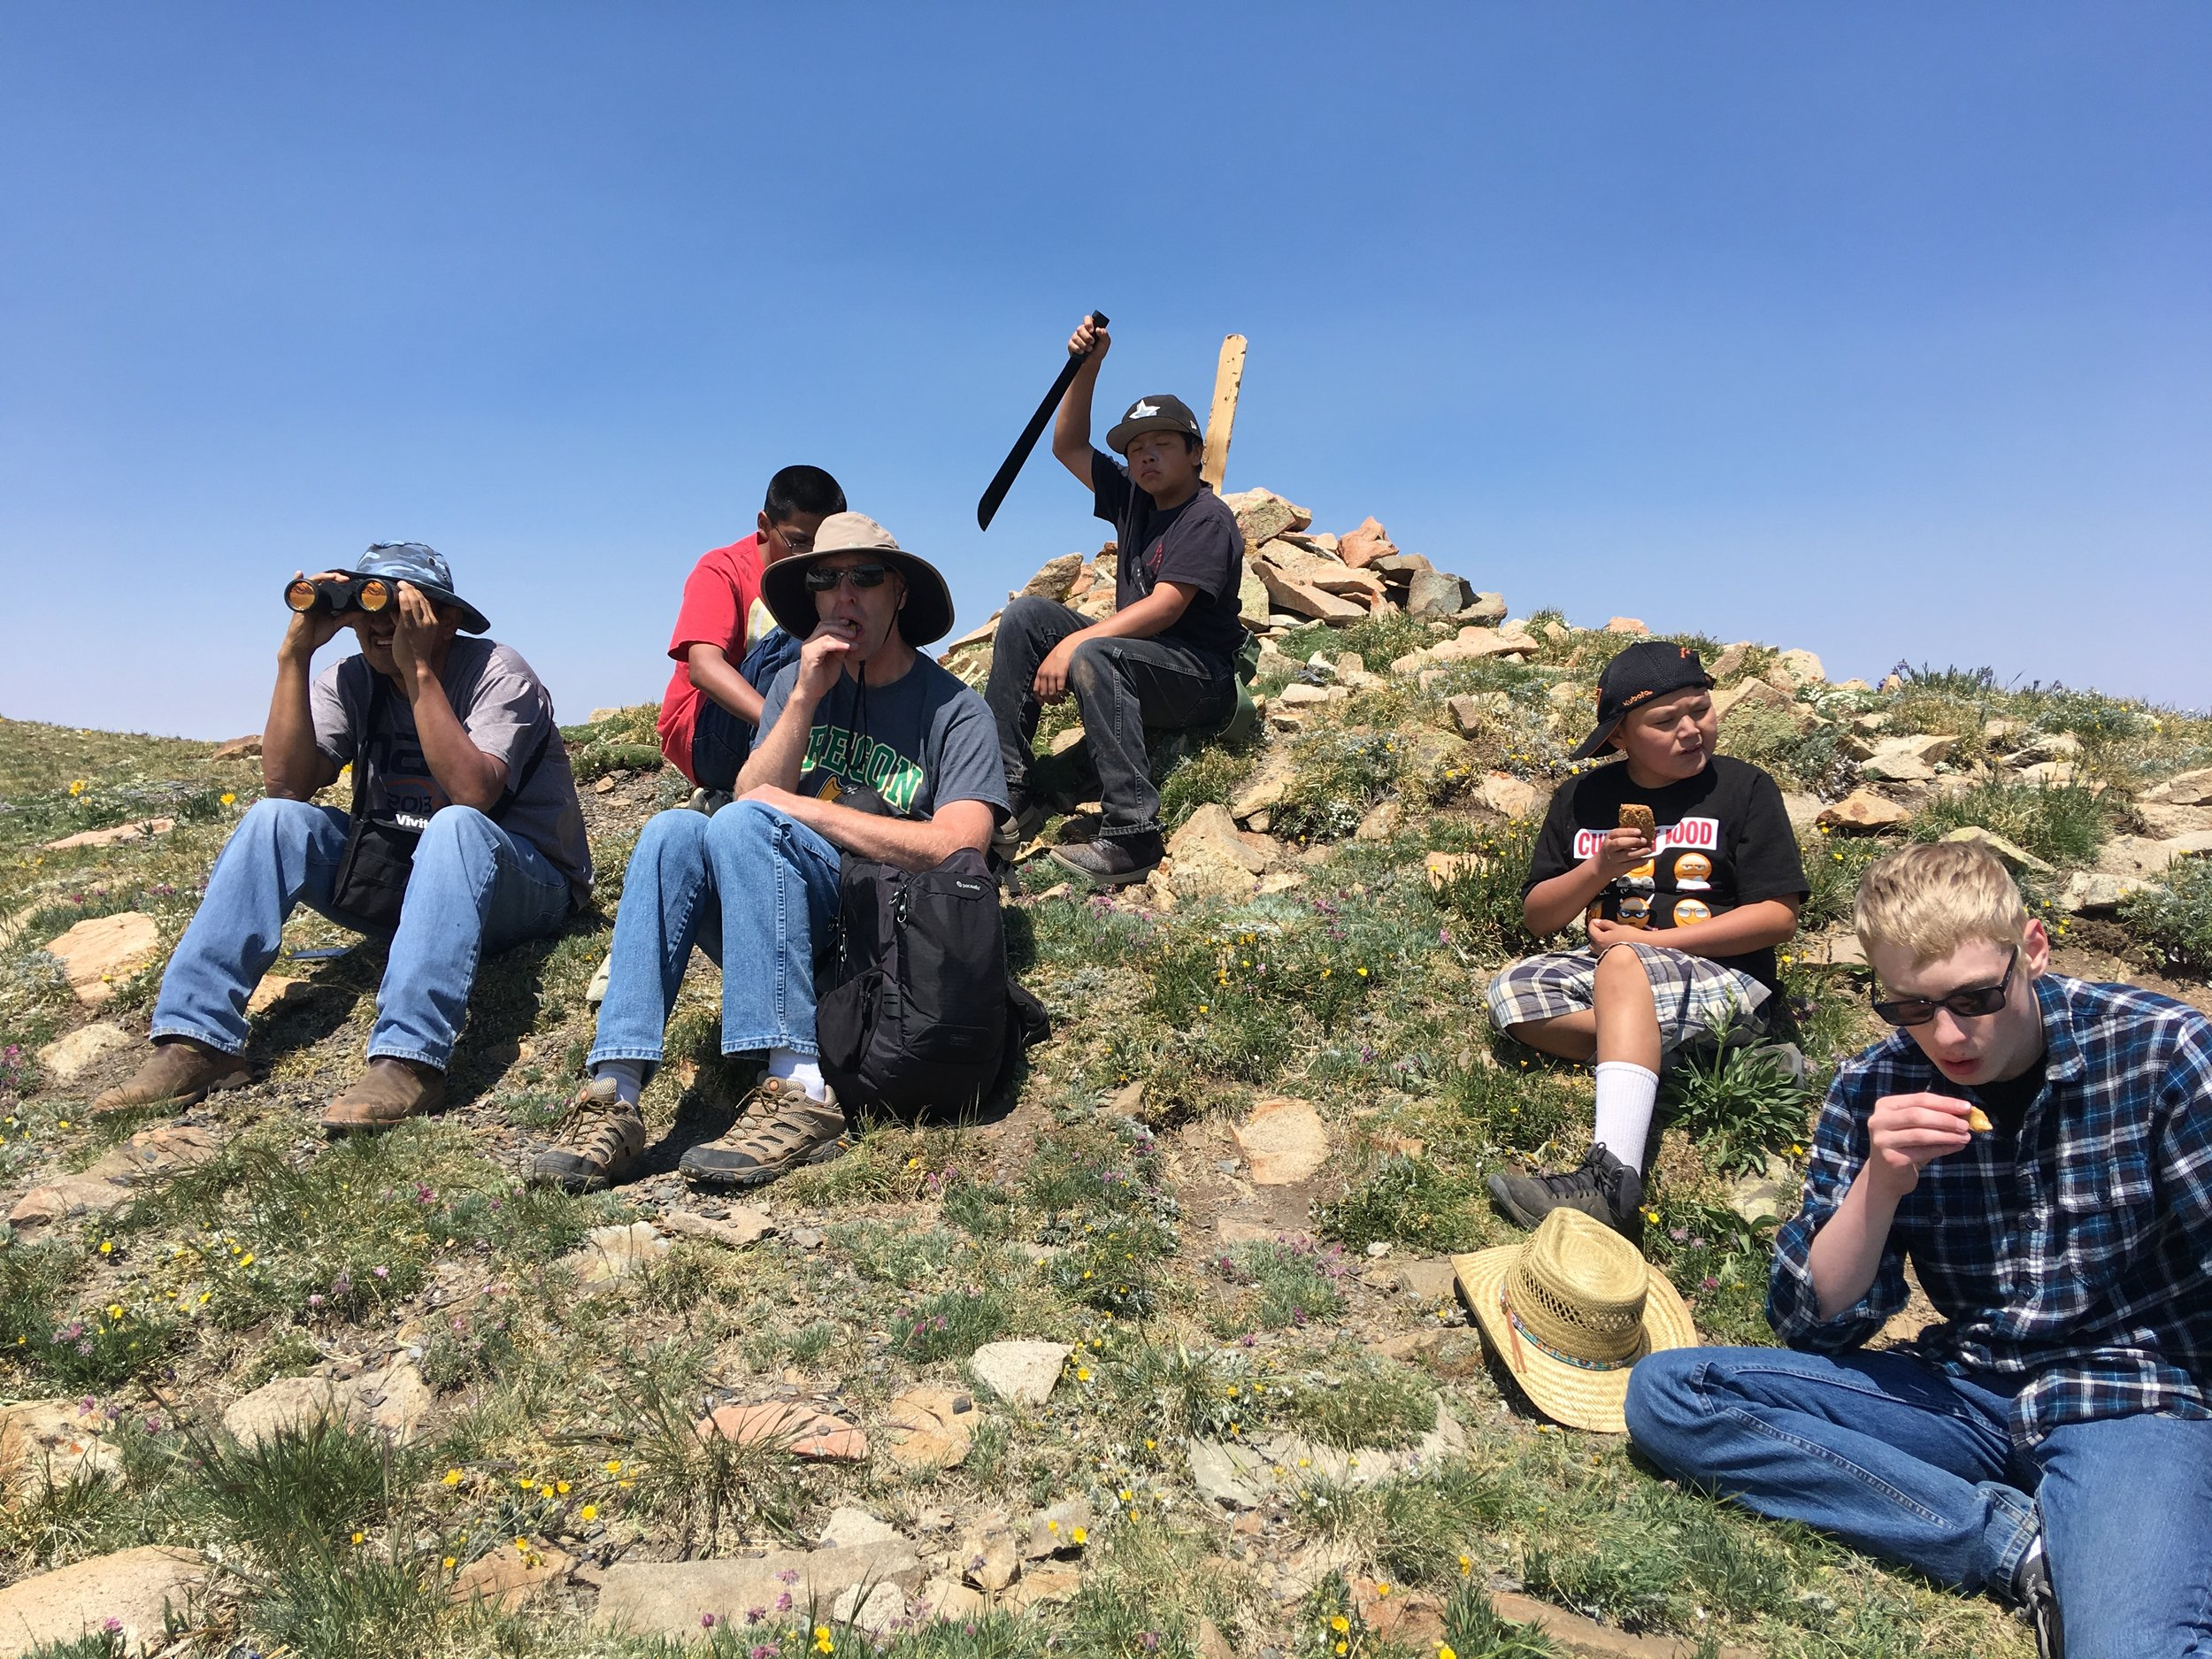 hiking in the mountains colorado mens youth familiy retreat navajo new mexico lutheran indian ministries tim norton